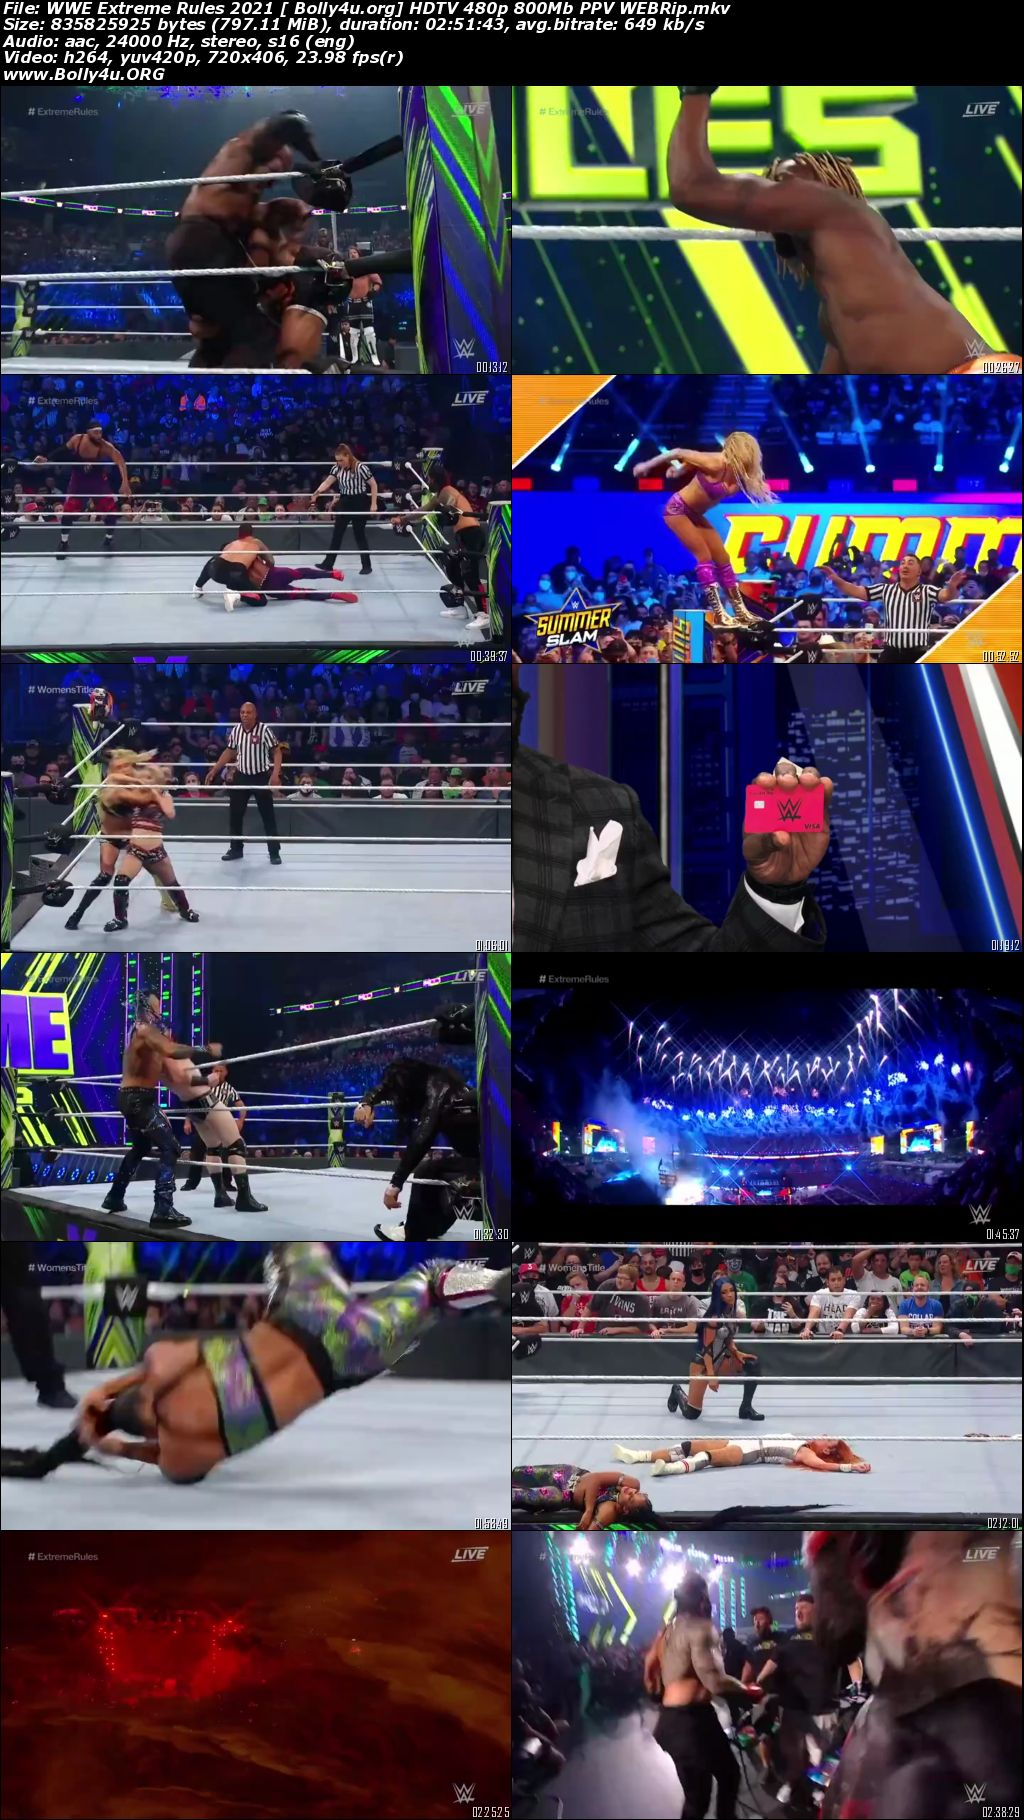 WWE Extreme Rules 2021 WEBRip PPV 480p 800Mb Download